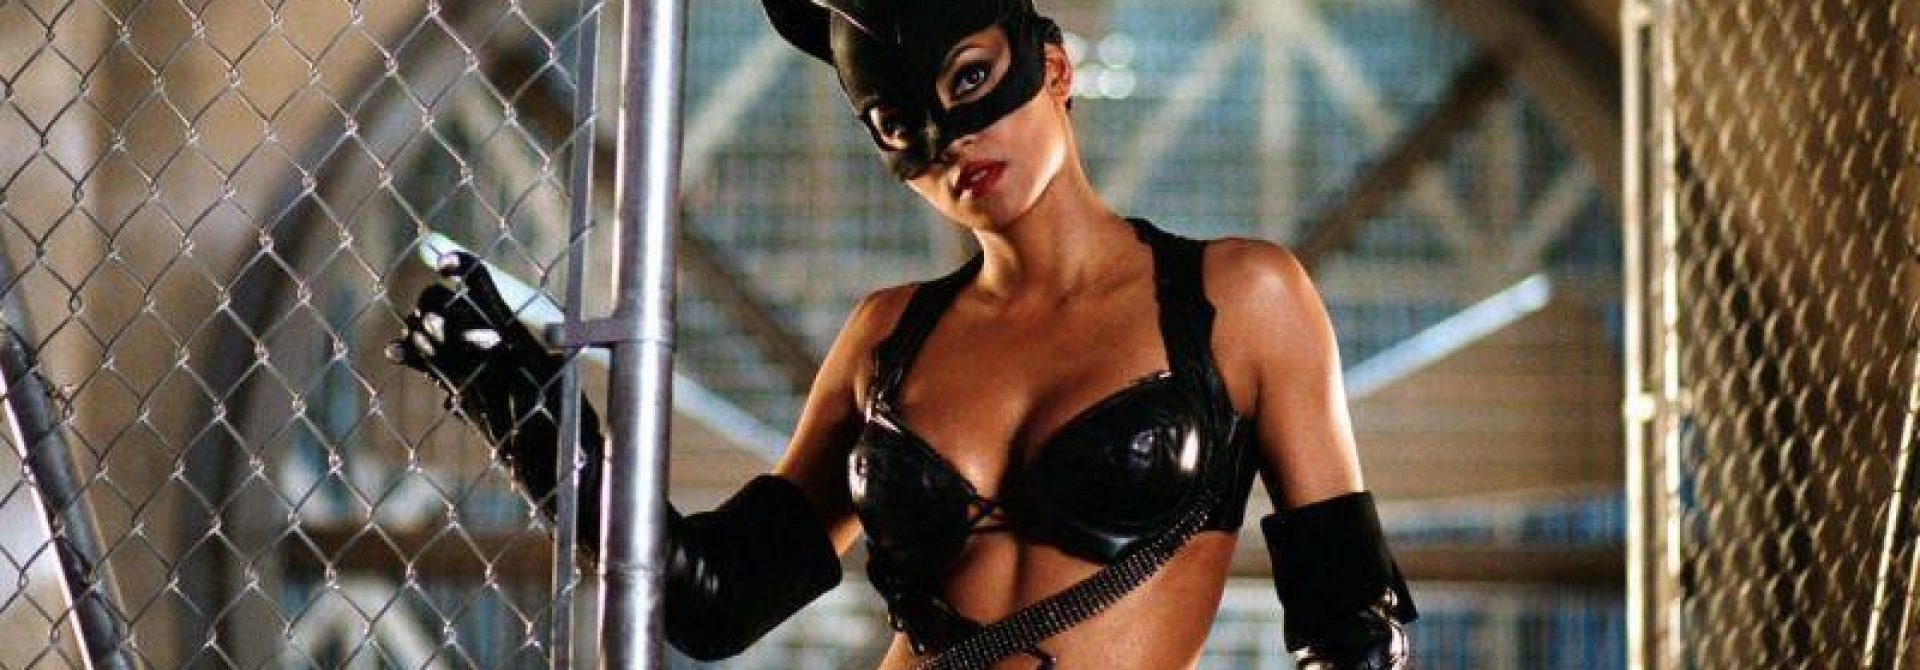 Catwoman Writer Admits Movie Is Bad, Internet Loses Mind